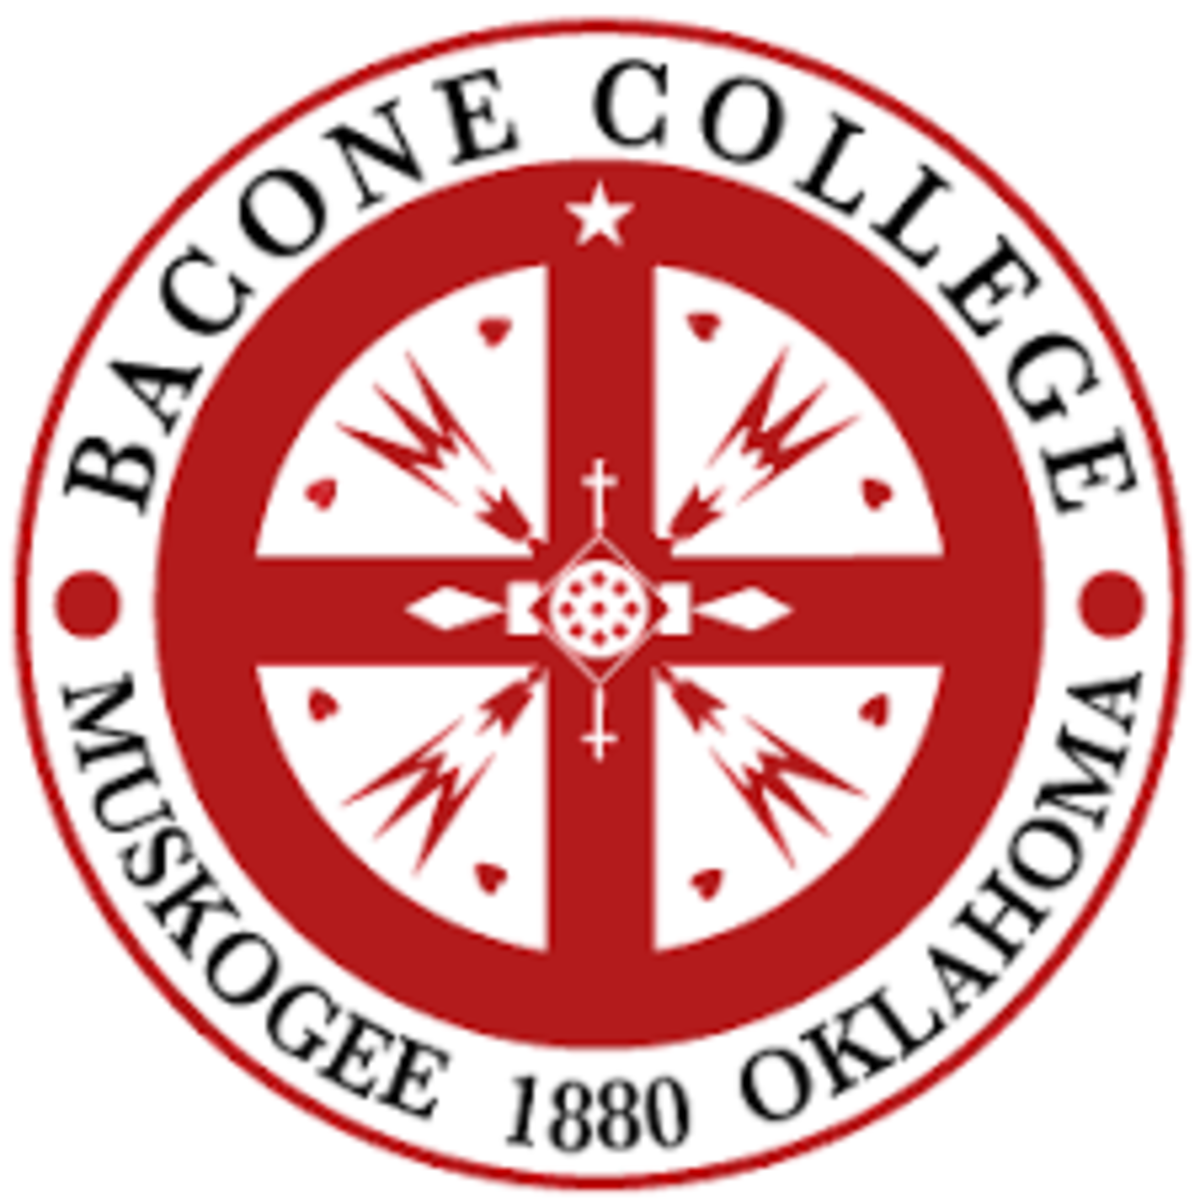 Bacone College - seal